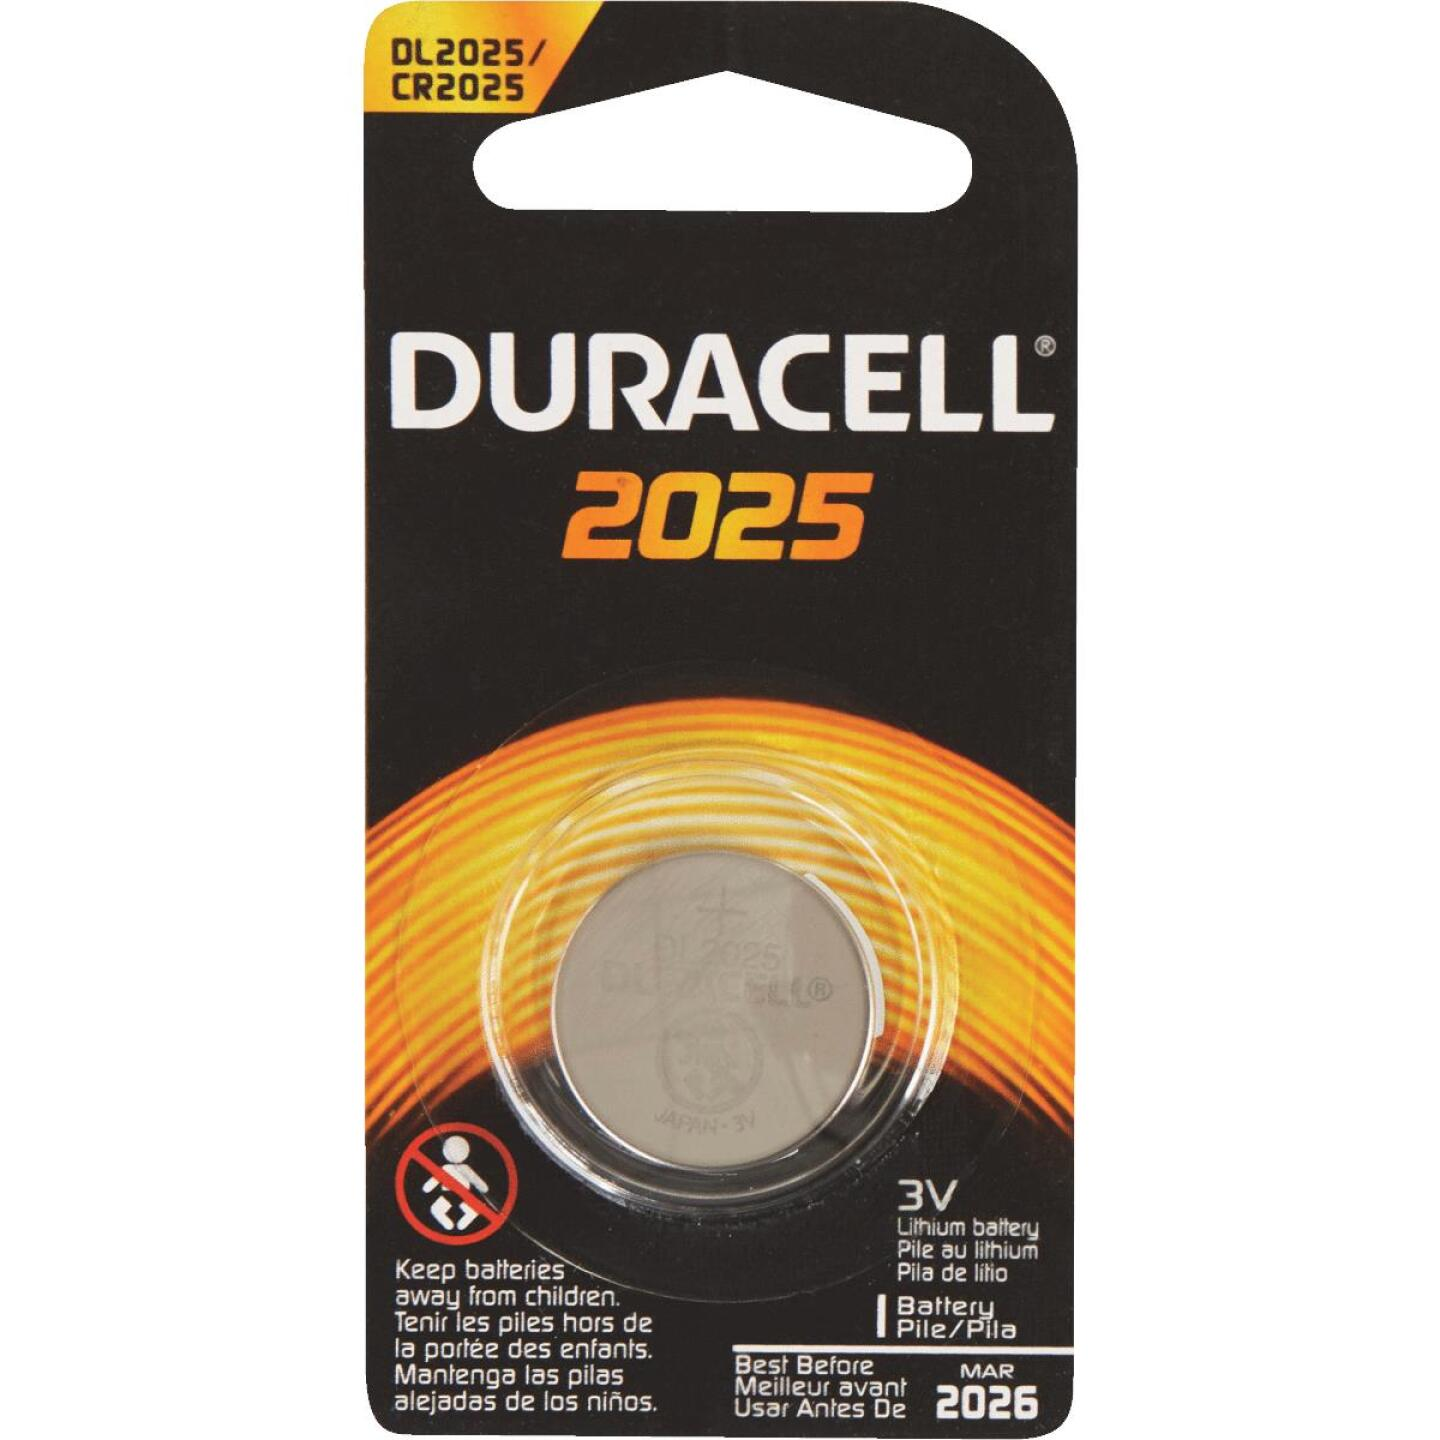 Duracell 2025 Lithium Coin Cell Battery Image 2